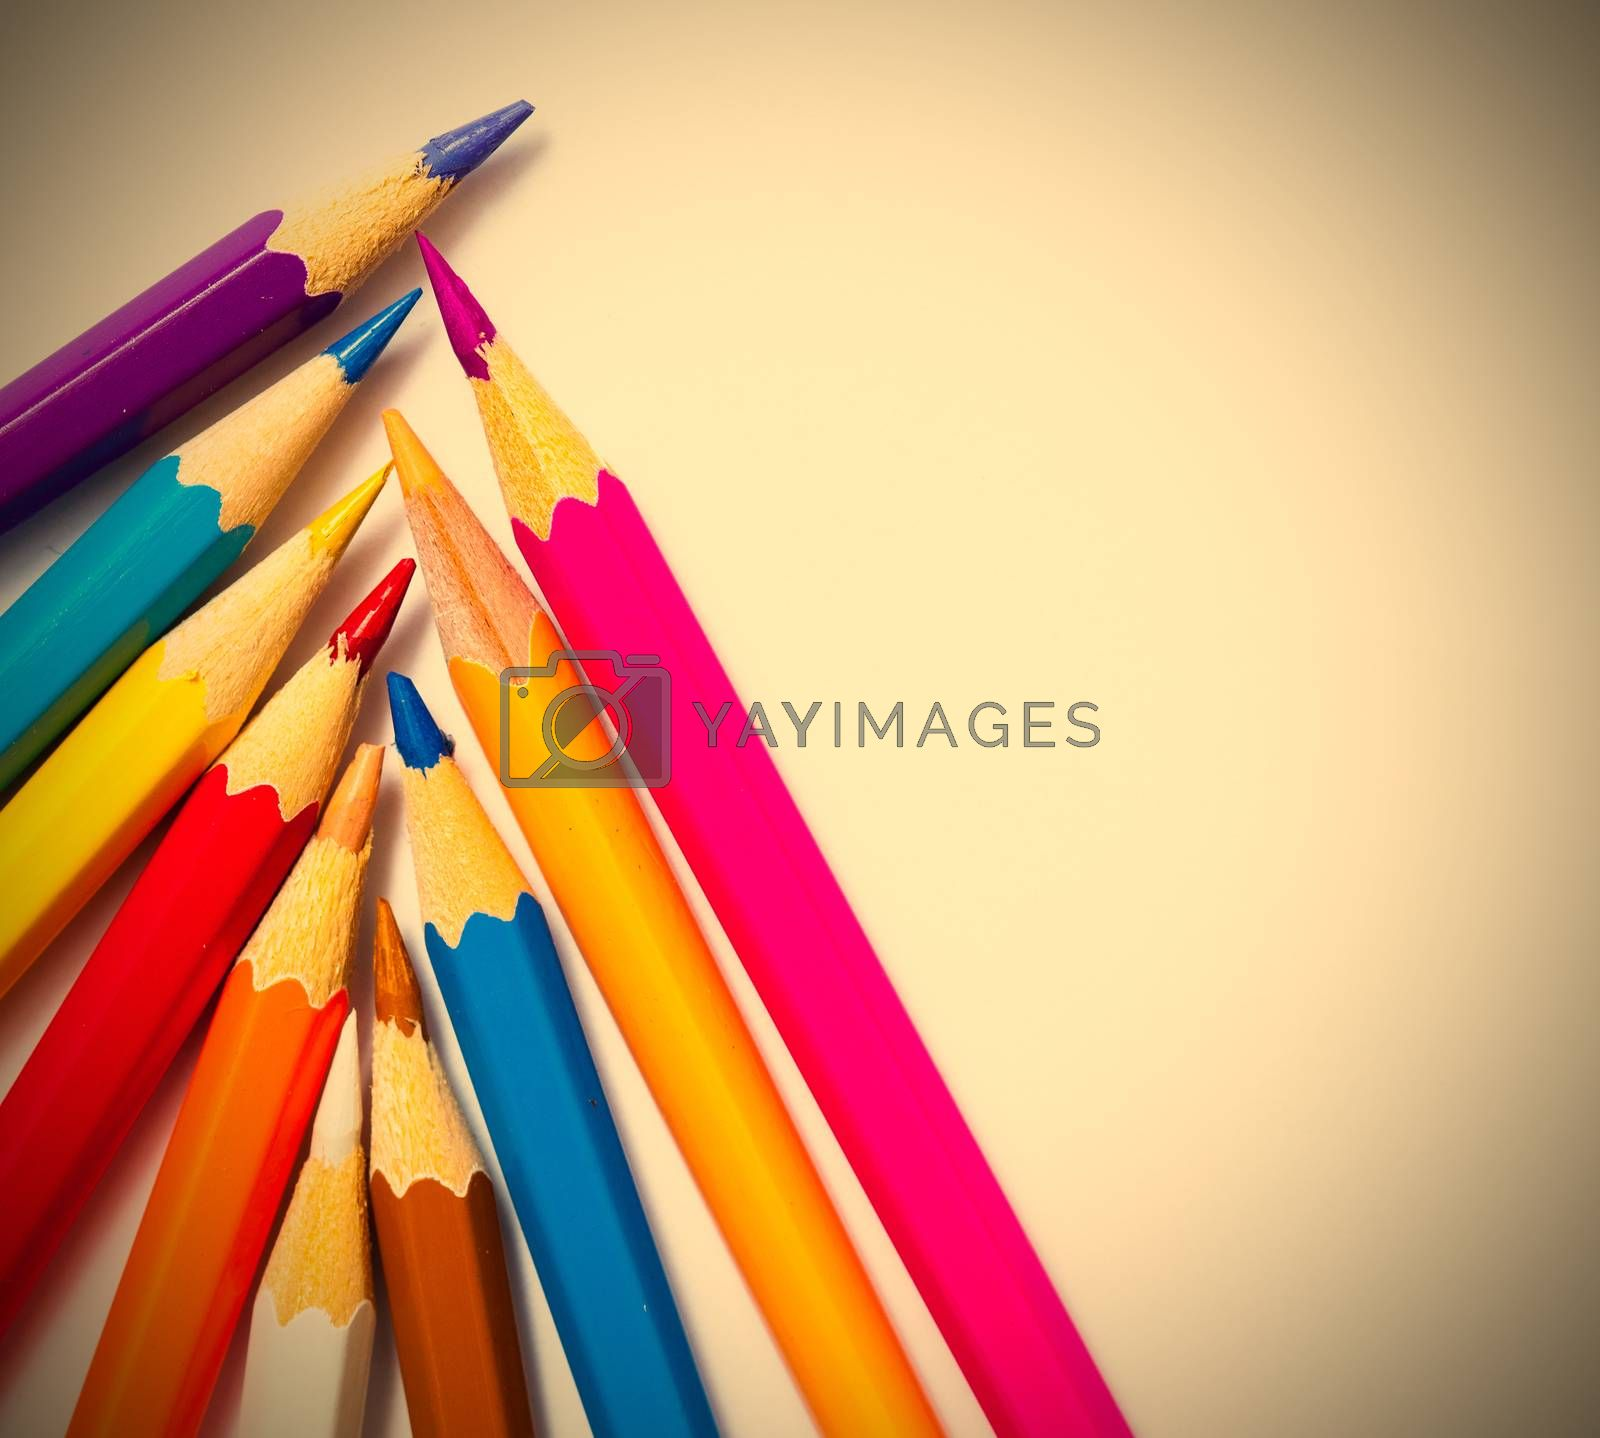 set of colored pencils for drawing on a white background. instagram image retro style